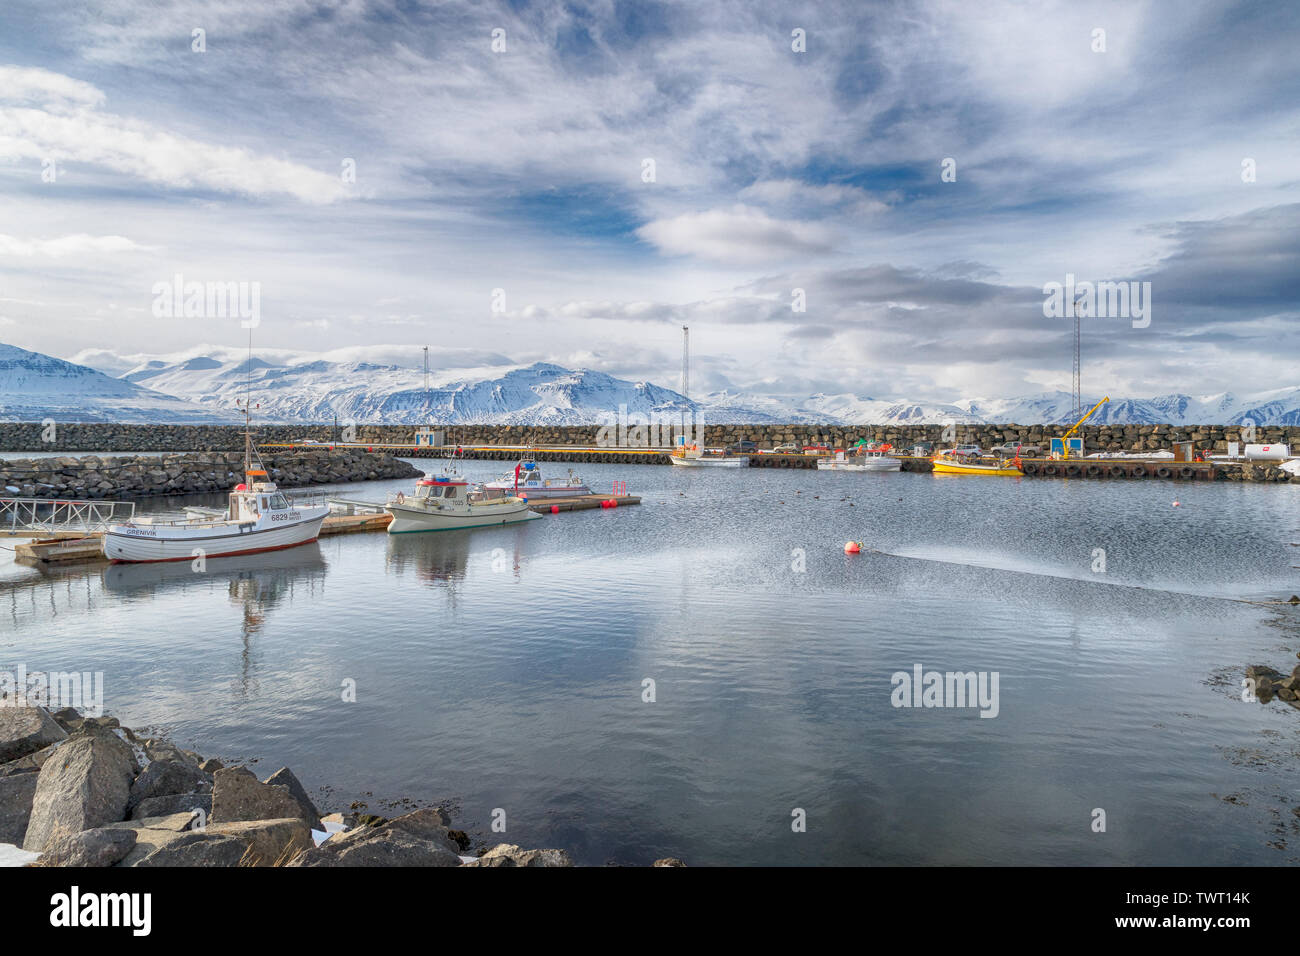 The harbour at Grenivik, Iceland - Stock Image